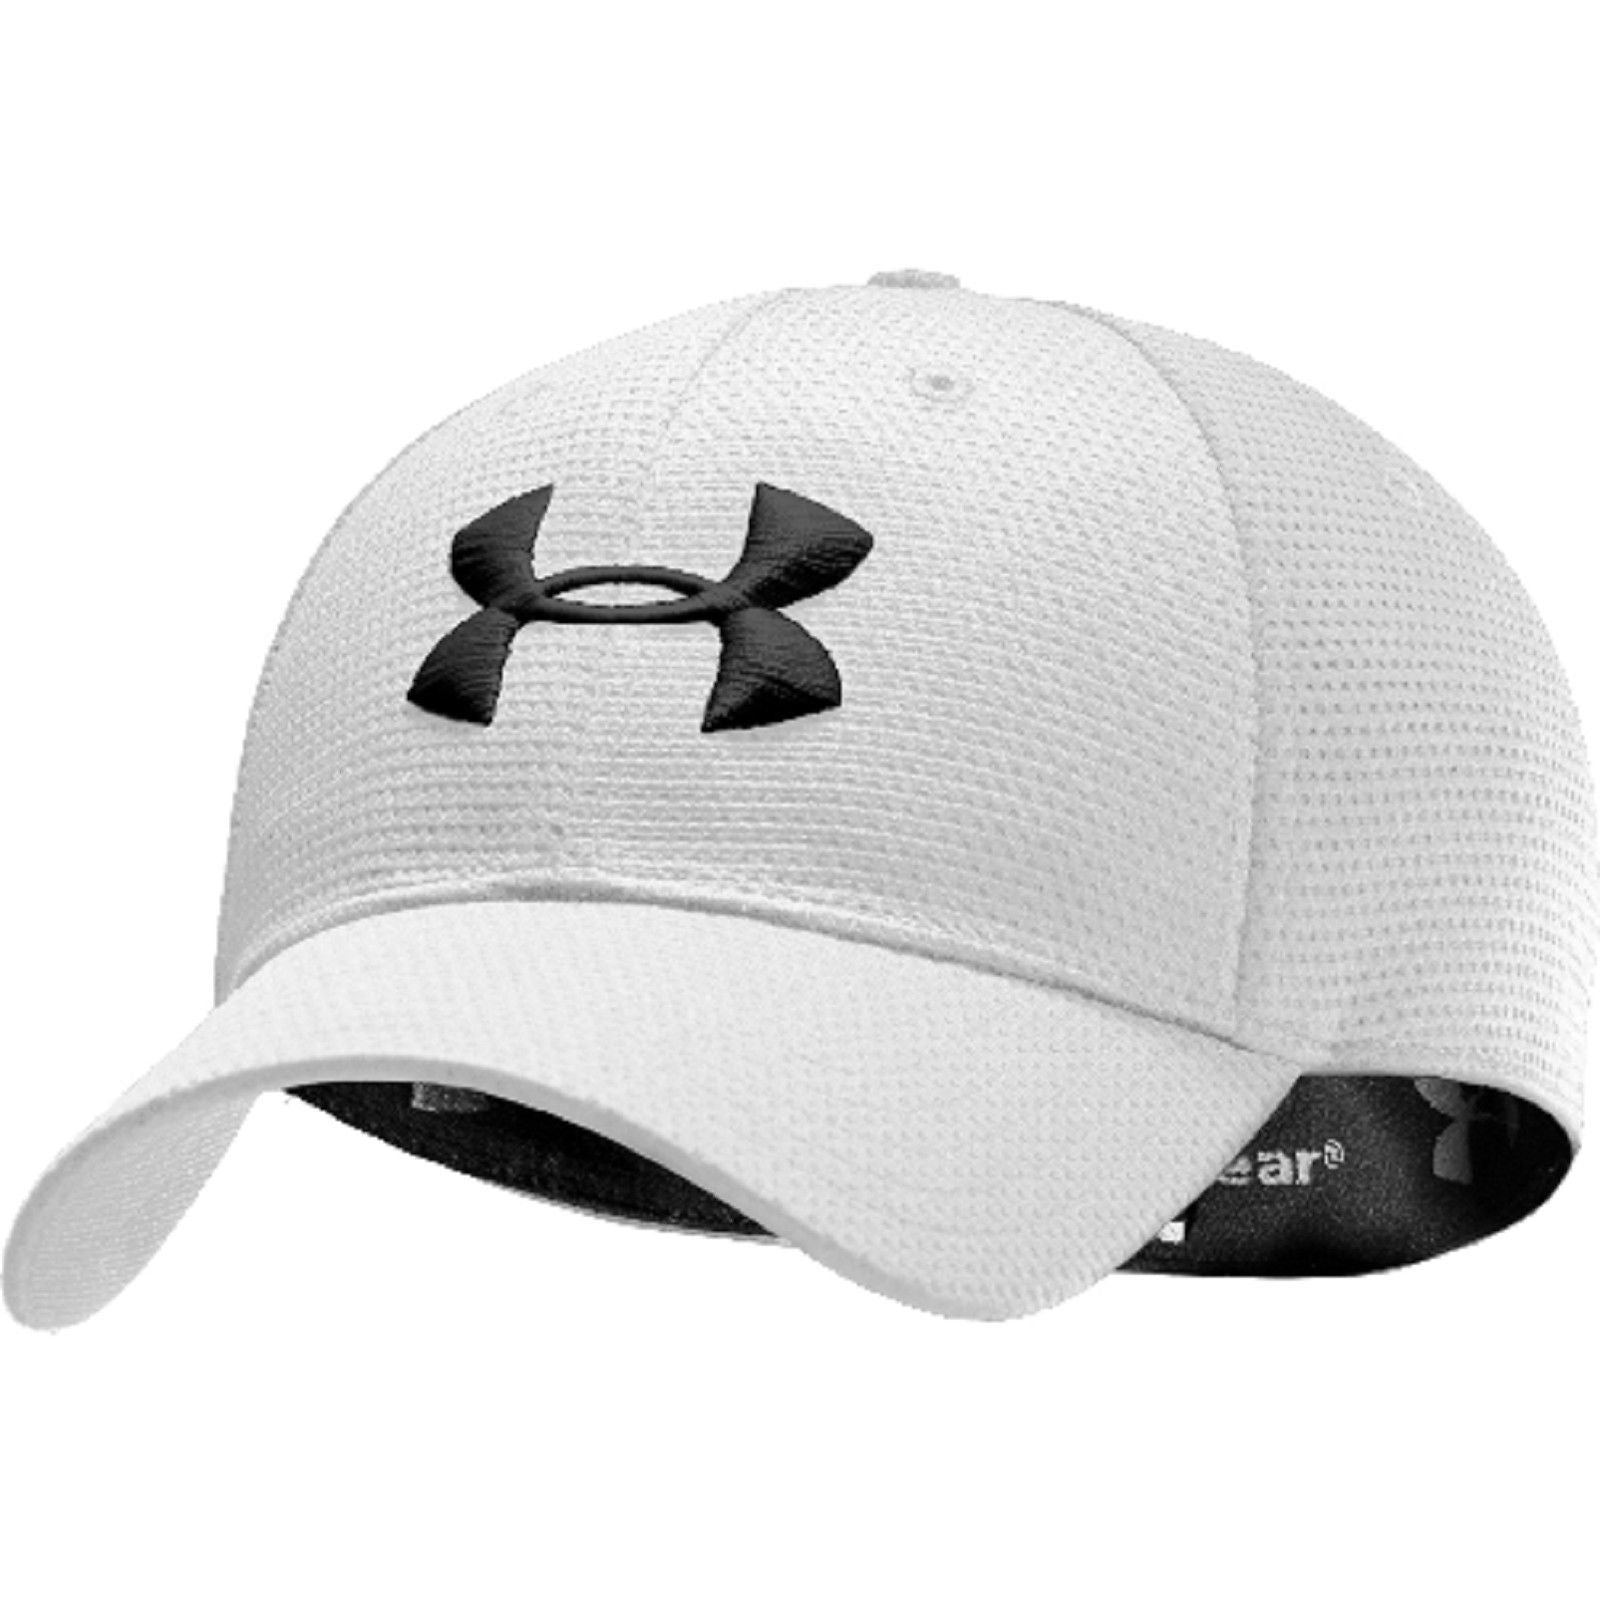 1b866c6d9c7 ... Under Armour Blitzing Stretch Fit Cap - Men s UA HeatGear PolyMesh  Baseball Hat White ...